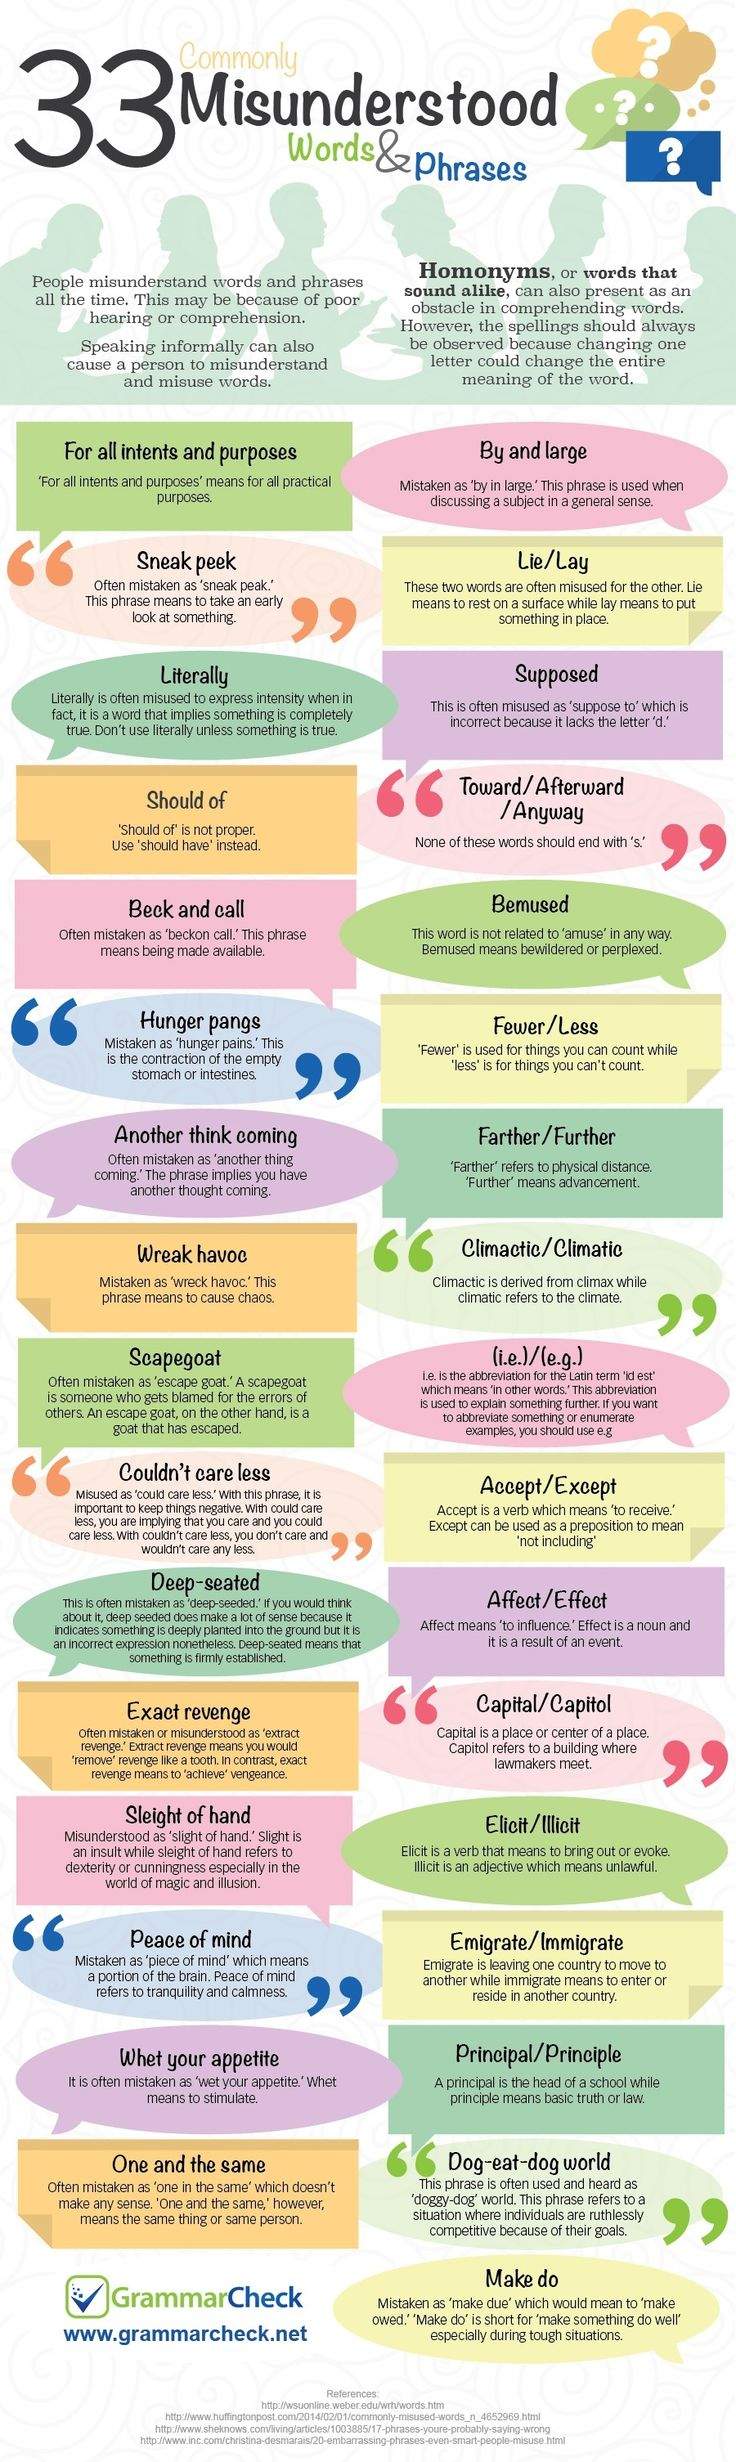 33 Misunderstood English Phrases